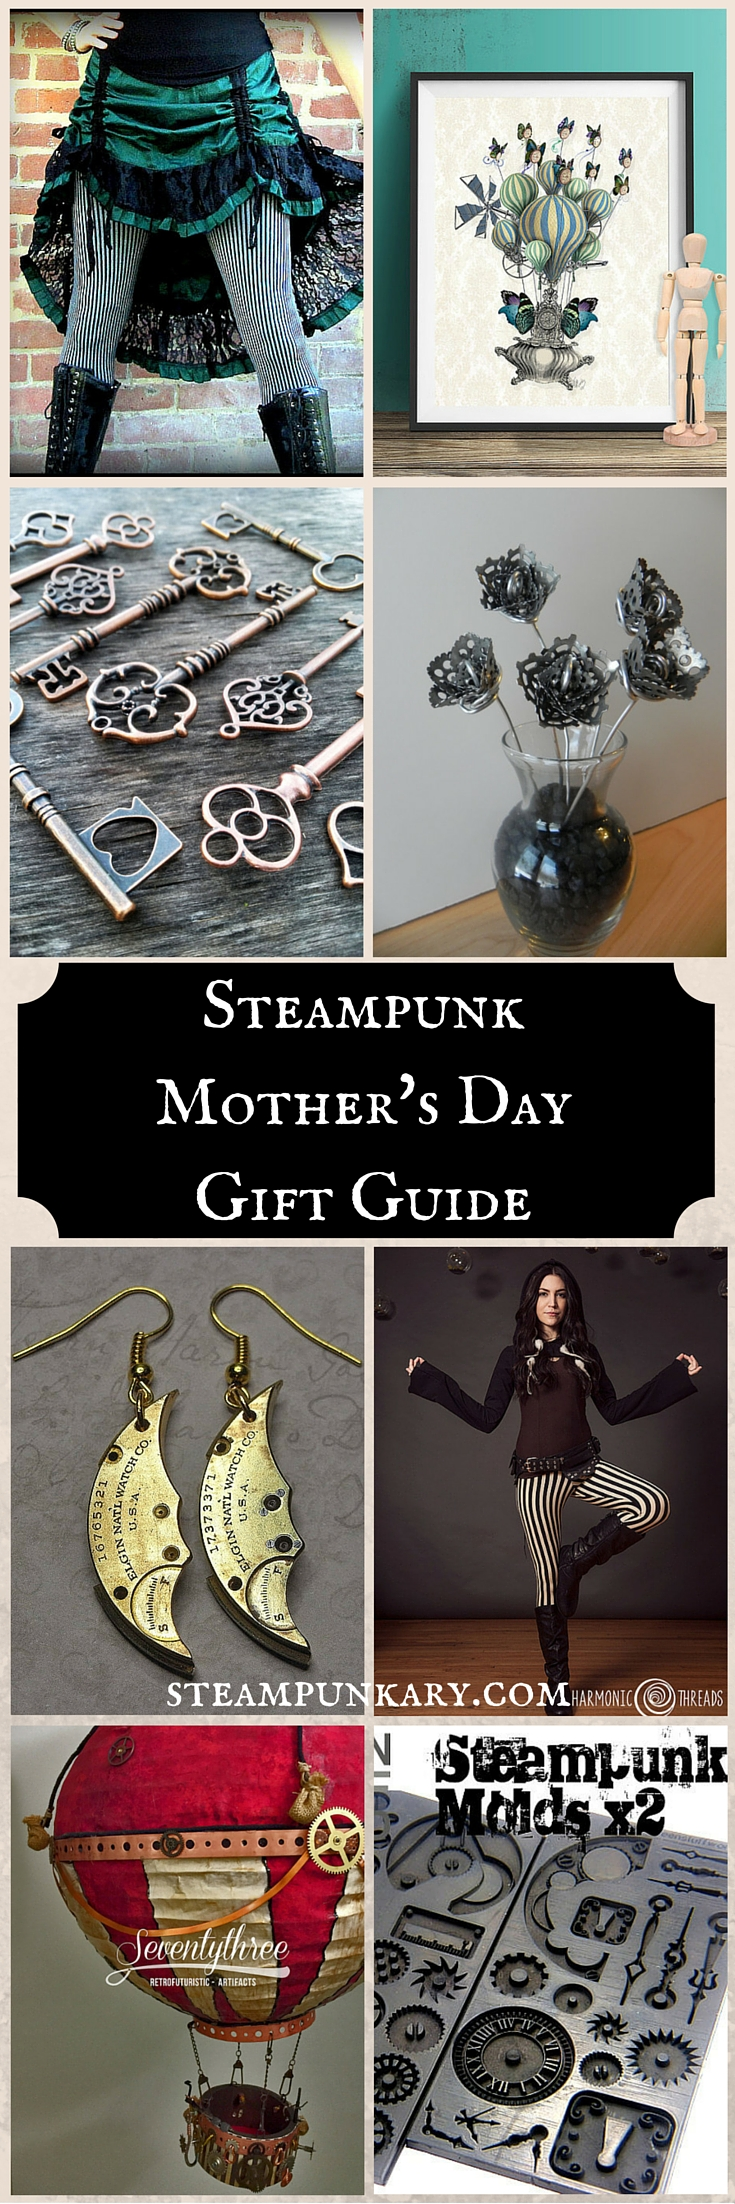 Steampunk Mother's Day Gift Guide